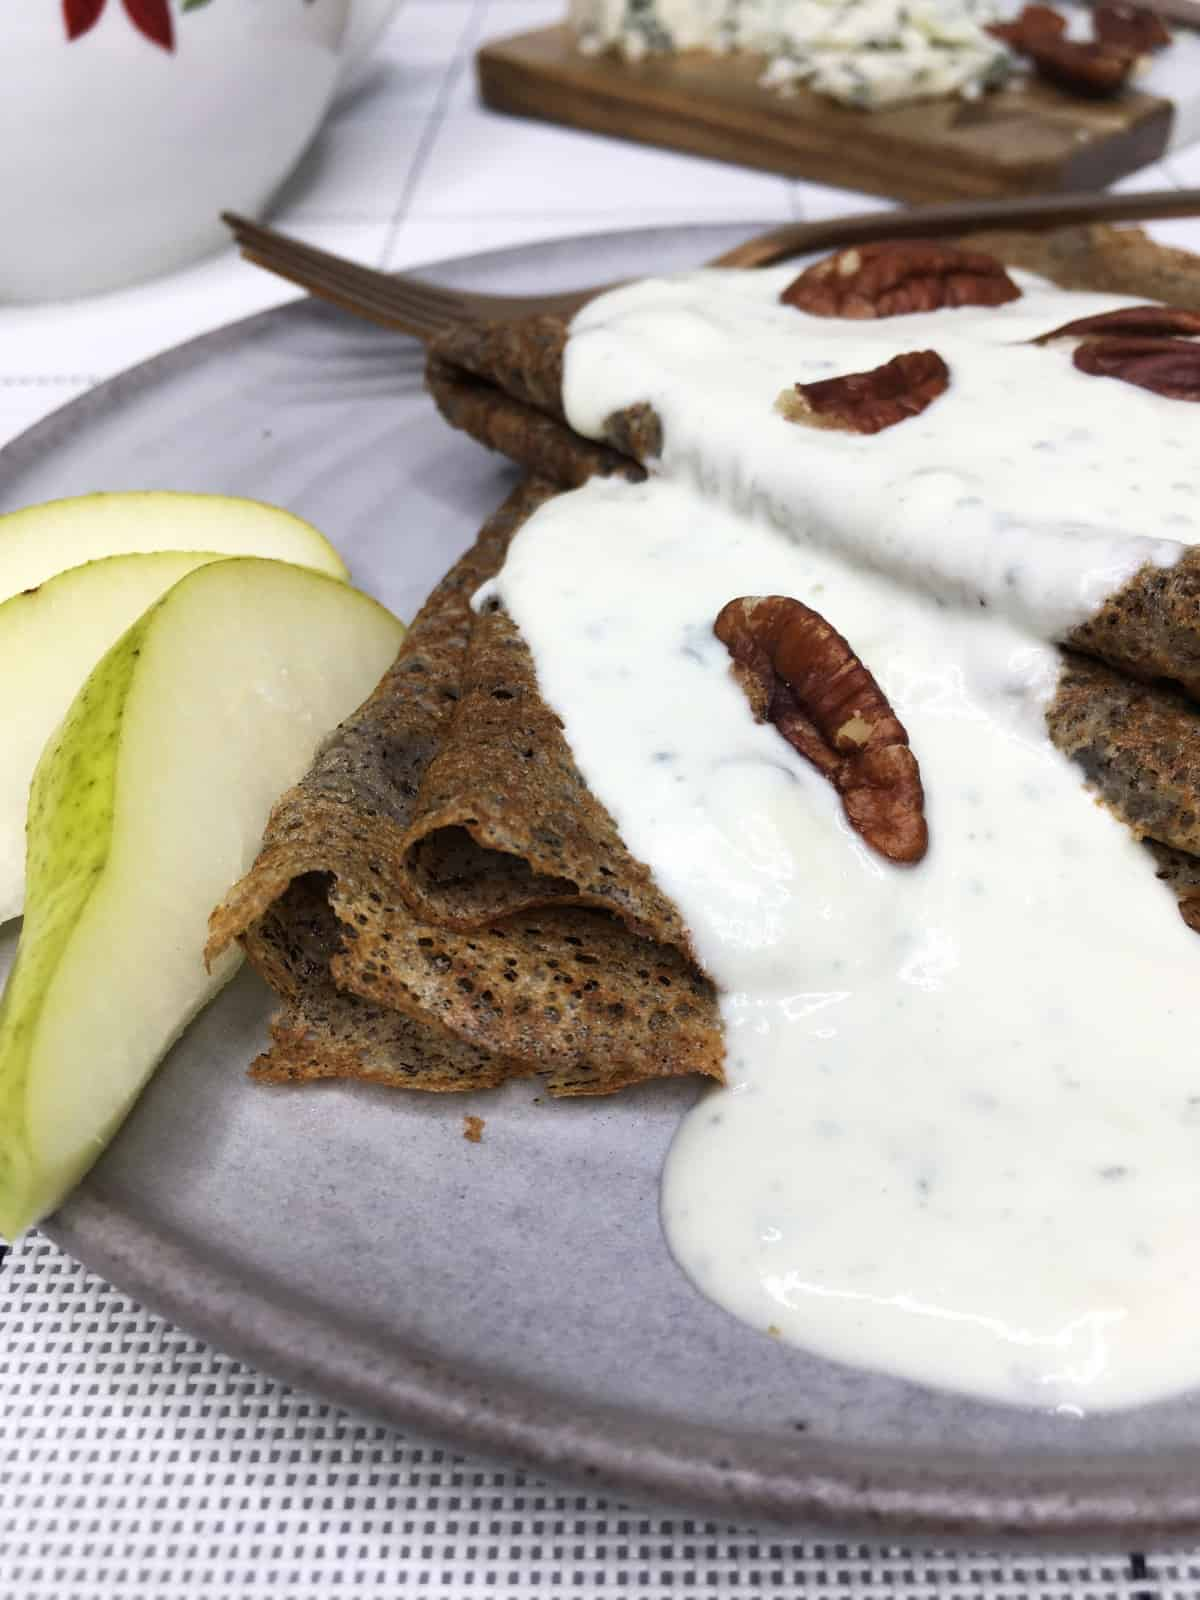 Buckwheat galettes served with blue cheese filling, pecans, sliced pear on a grey plate